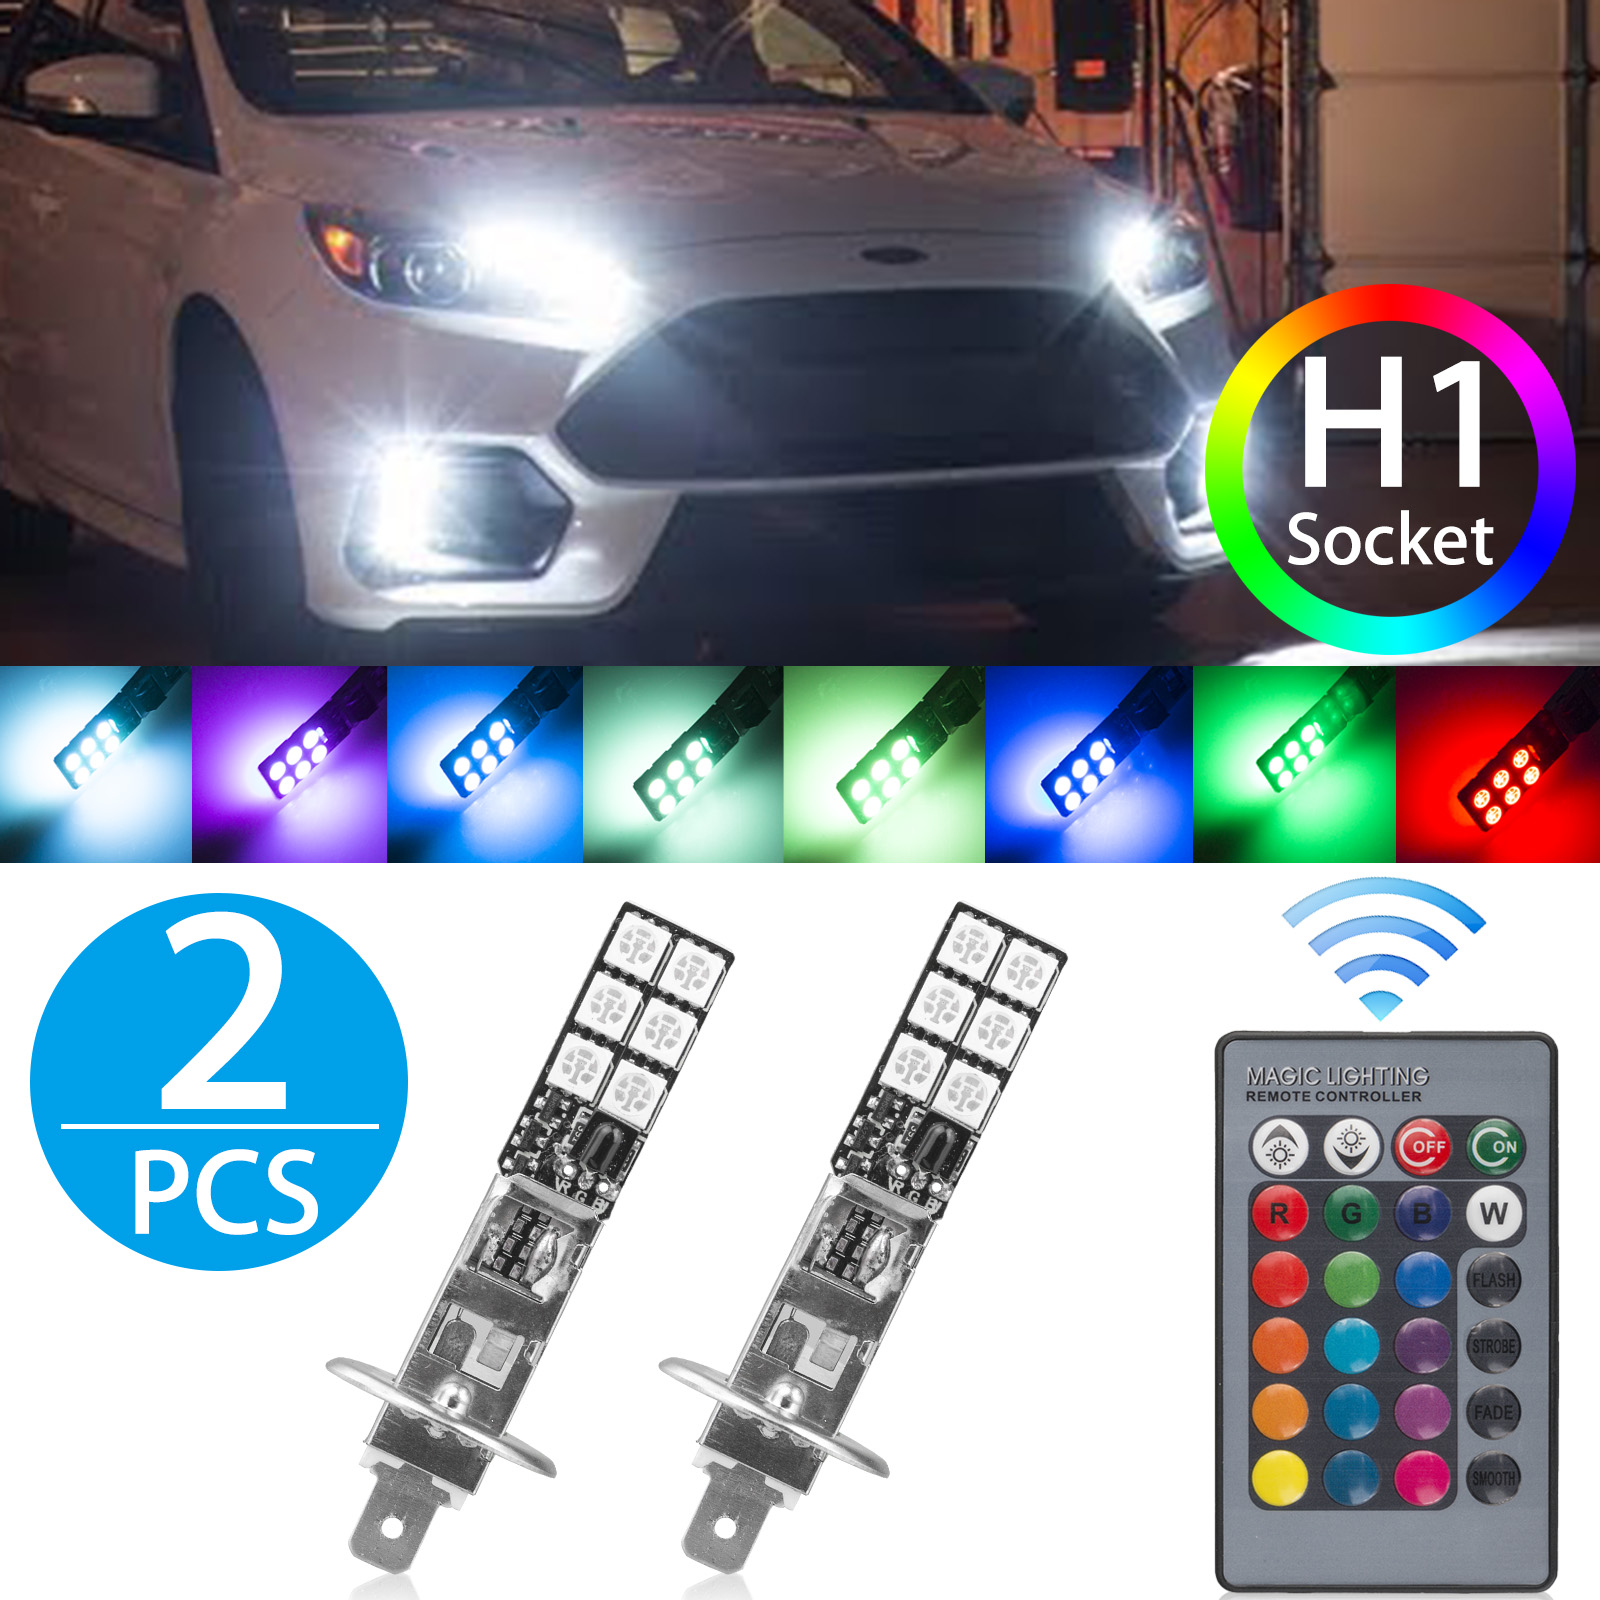 2-pack H1 LED Fog Light Bulb RGB Multicolor 16 Colors Switch 5050SMD Remote Control Flashing Lamps Car Trucks 12V Universal Replacement Accessories Modification